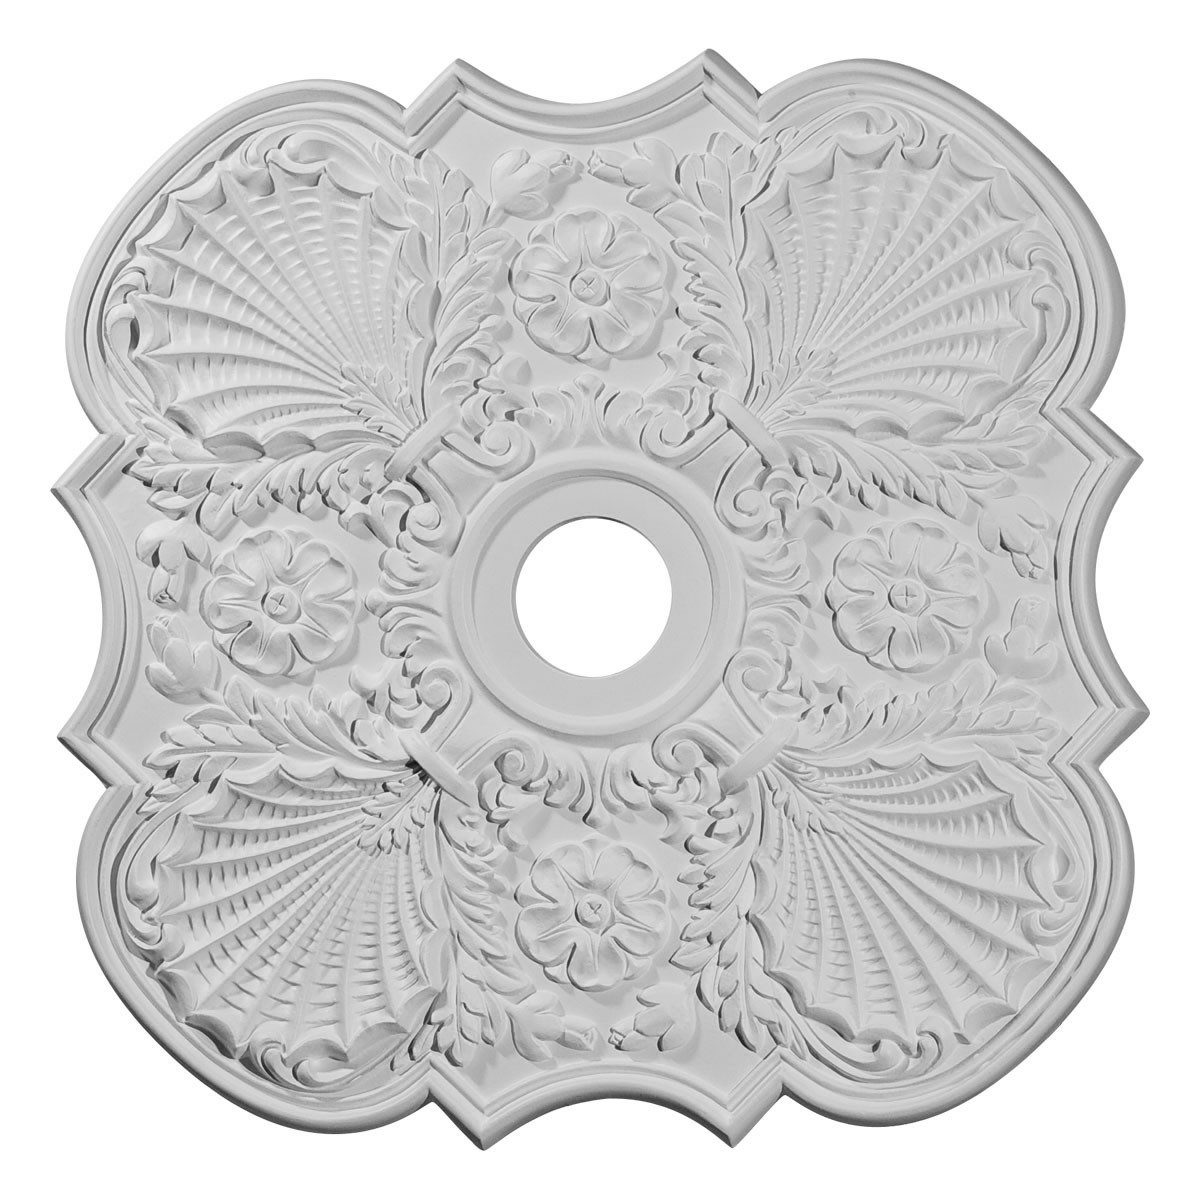 """EM-CM29FW - 29""""OD x 3 5/8""""ID x 1 3/8""""P Flower Ceiling Medallion (Fits Canopies up to 6 1/4"""")"""